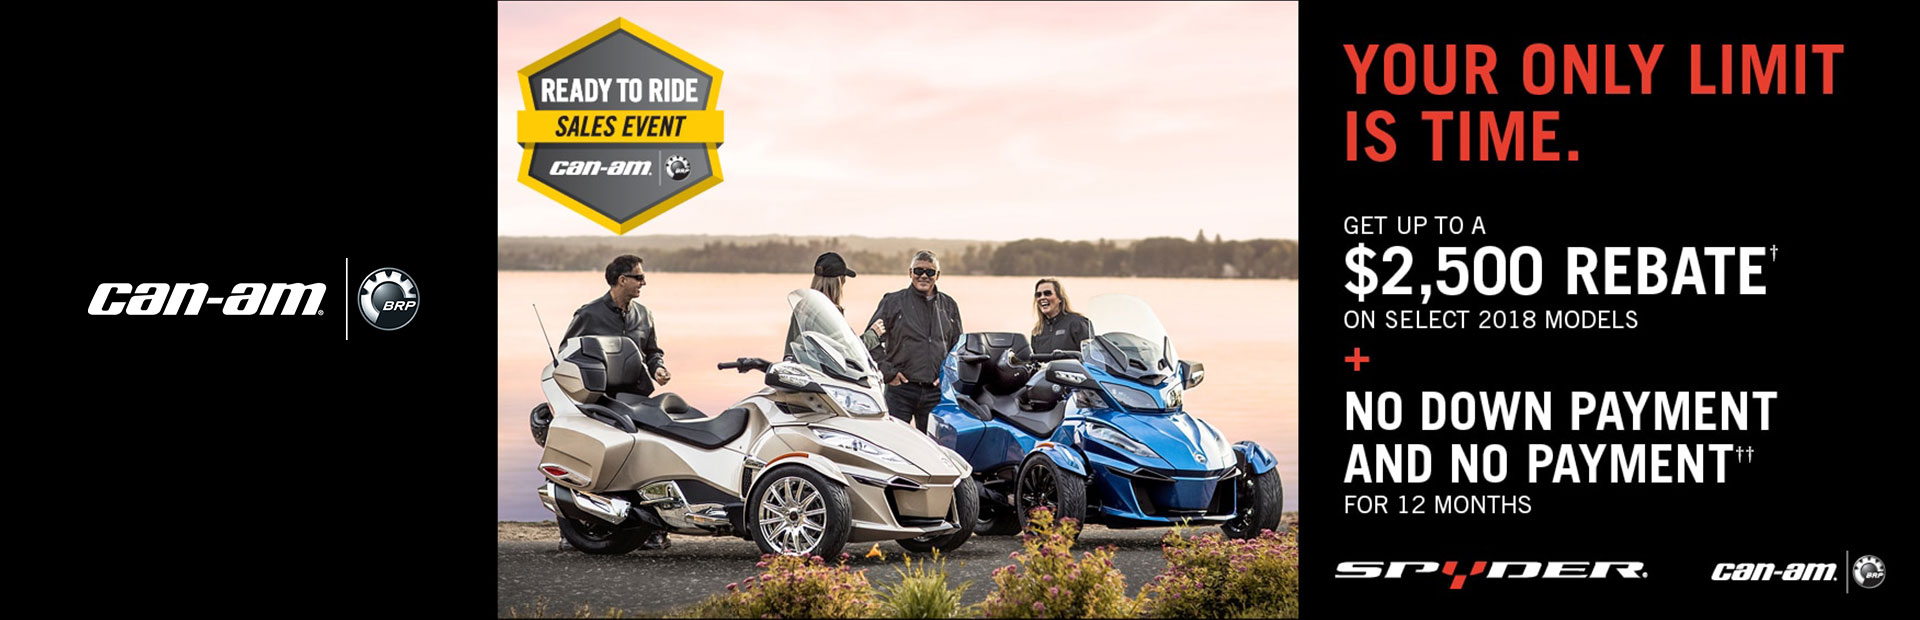 Can-Am: Ready to Ride Sales Event (Spyder)